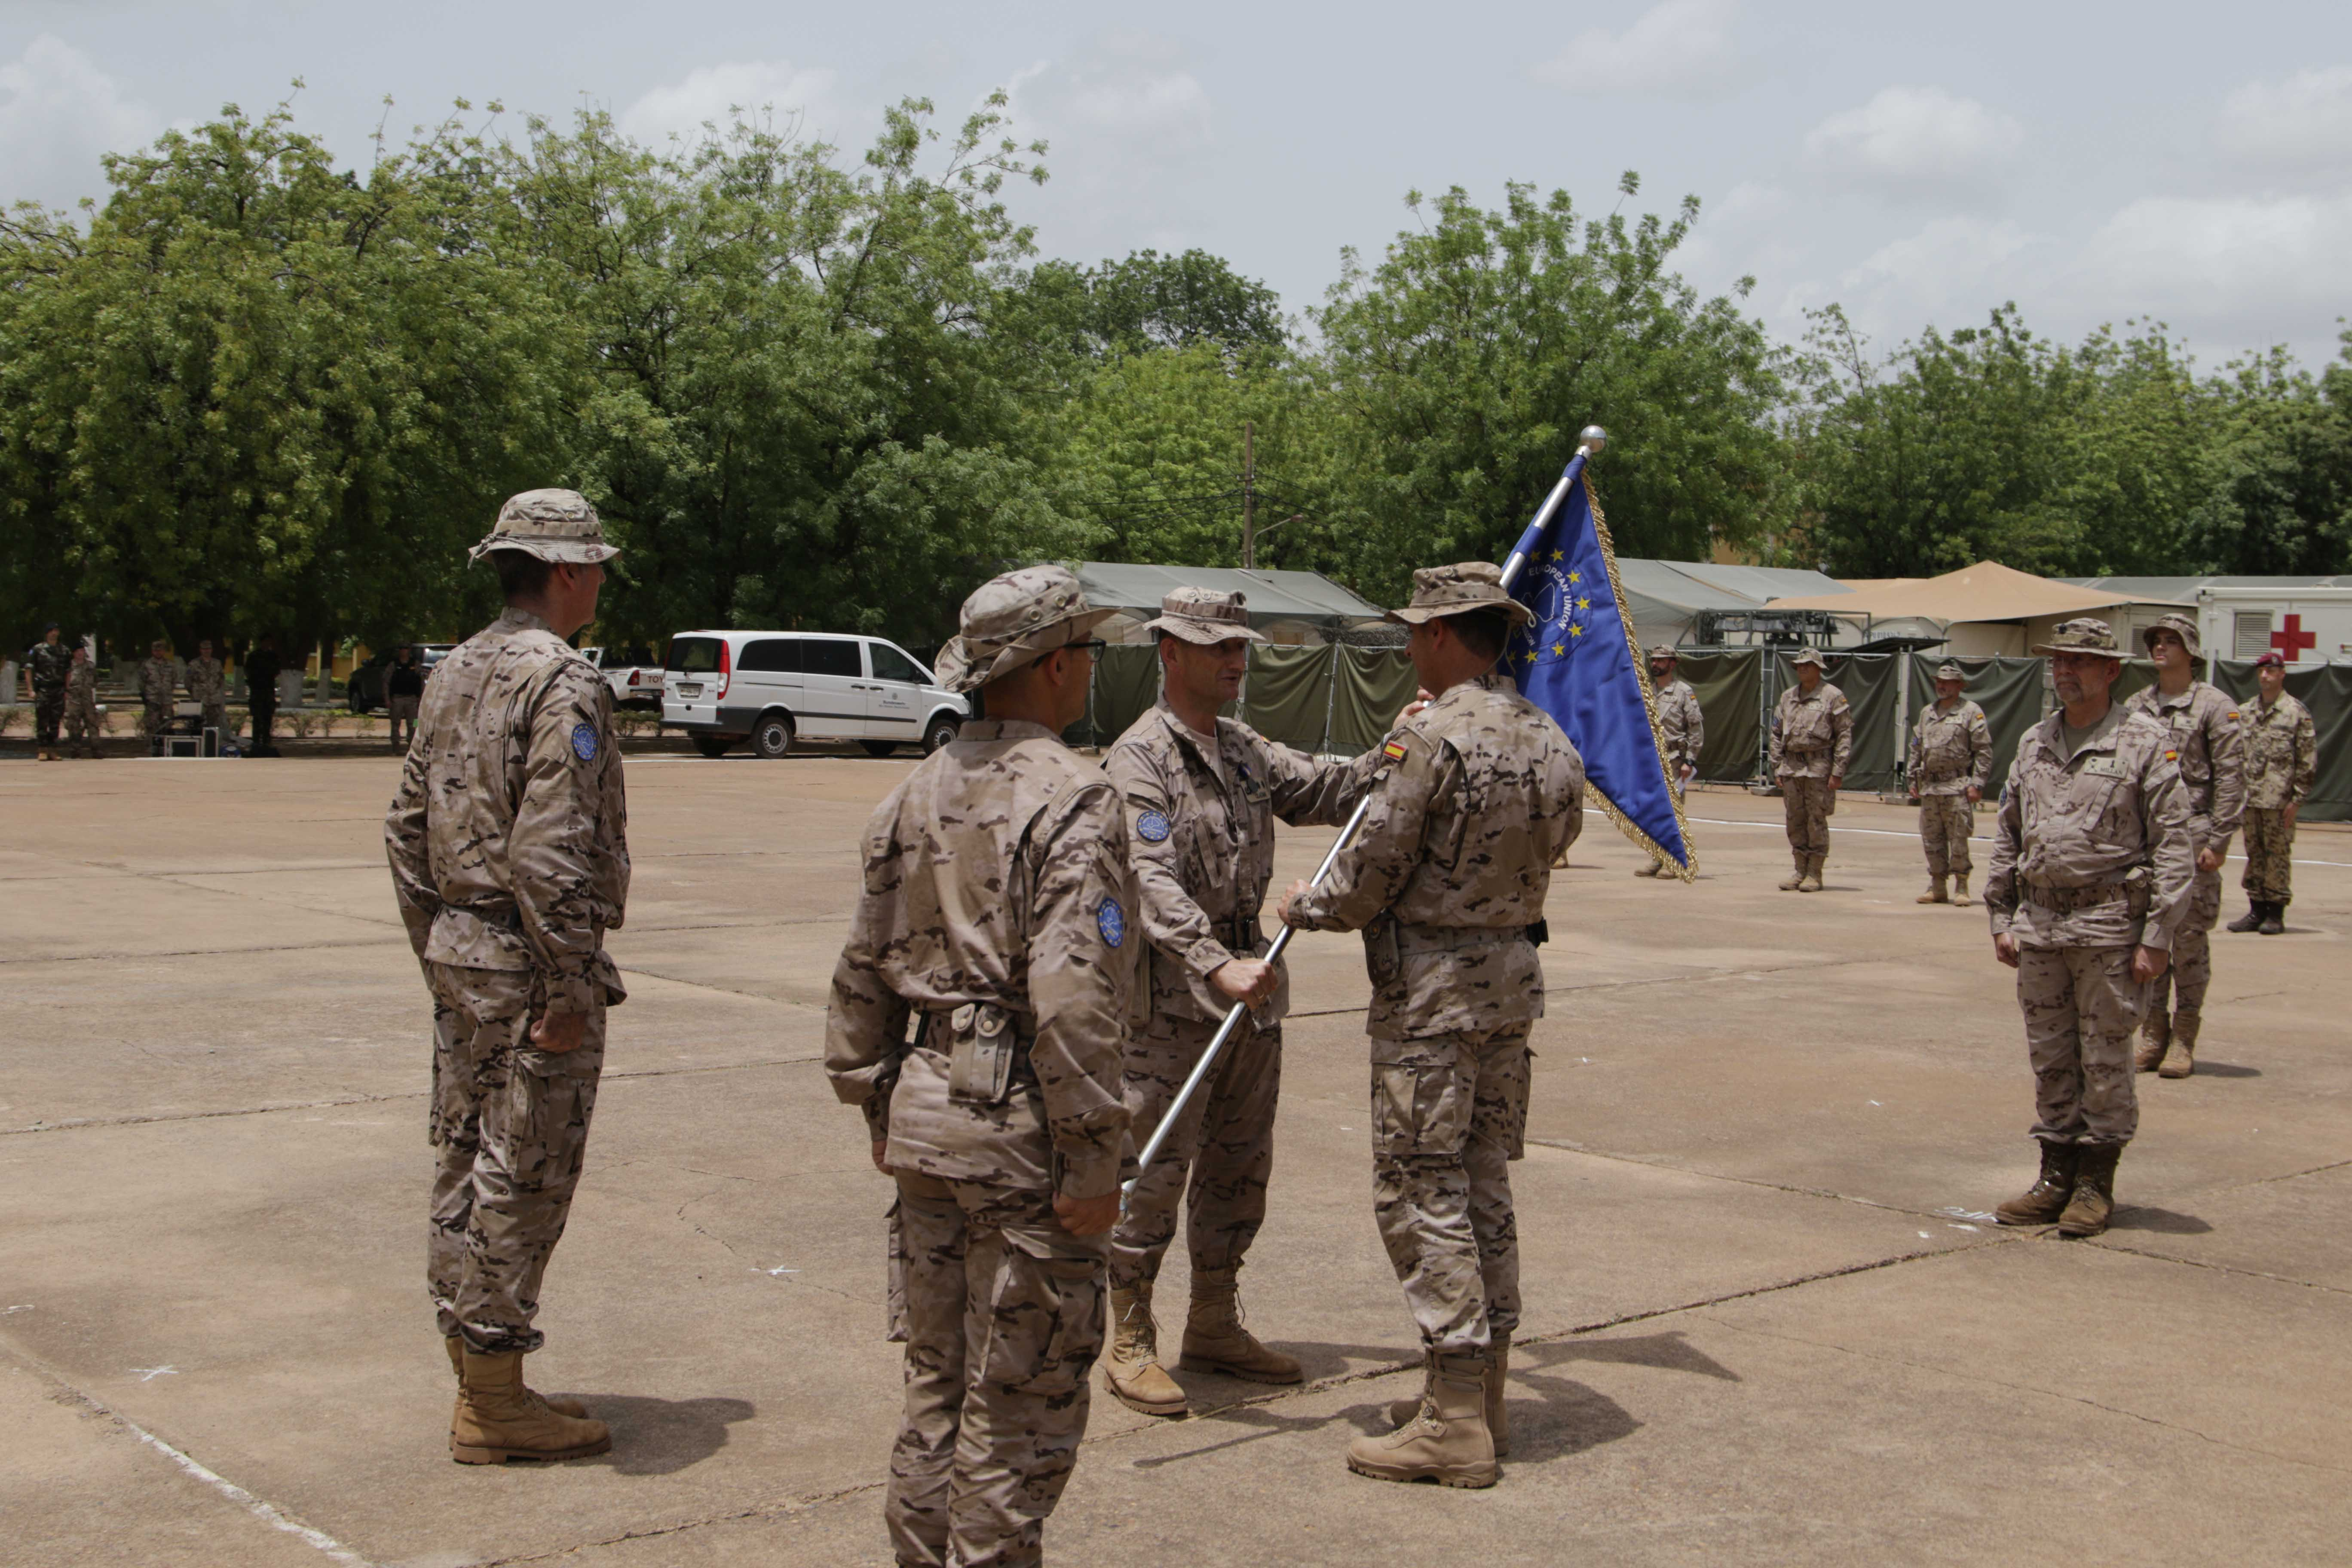 CHANGE OF COMMAND OF THE EDUCATION AND TRAINING TASK FORCE (ETTF) CEREMONY